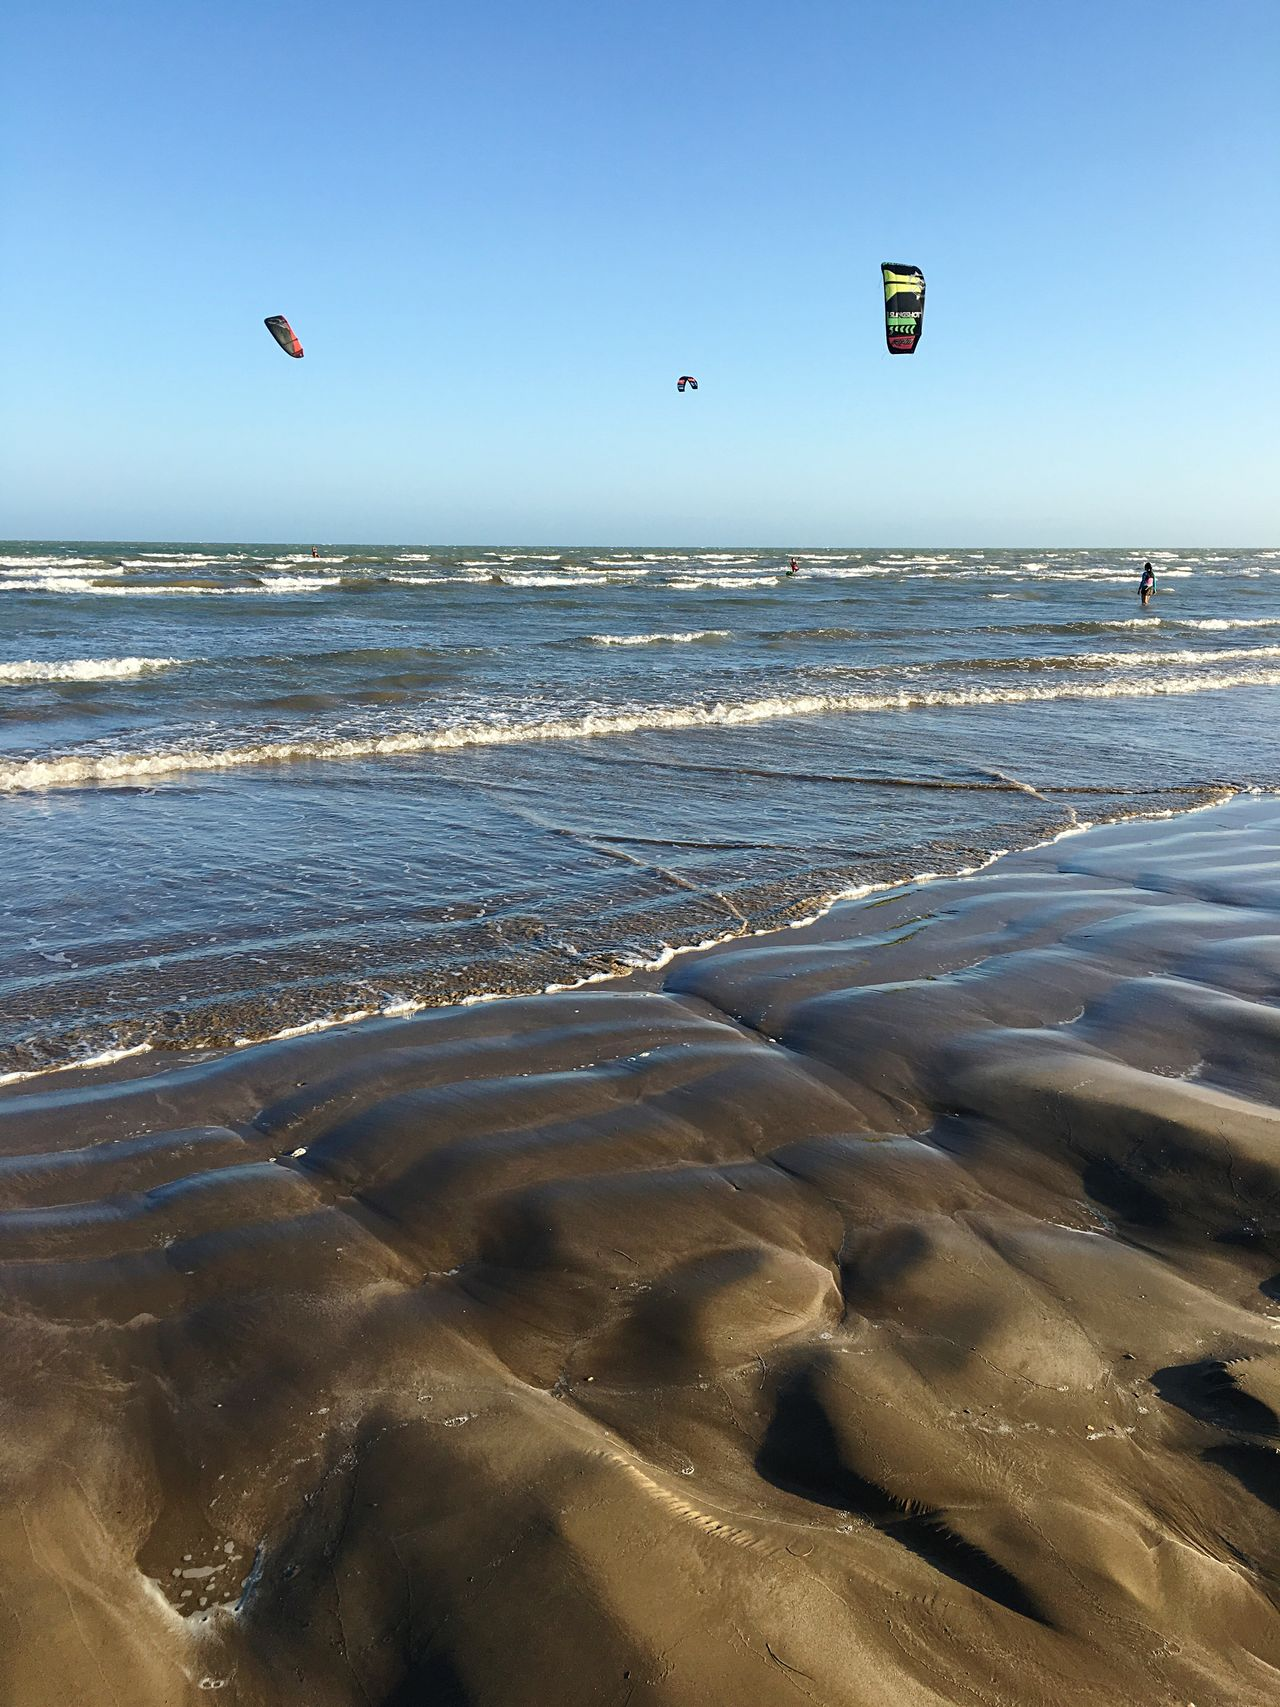 Sea Beach Nature Beauty In Nature Horizon Over Water Water Sand Scenics Clear Sky Shore Outdoors Sunlight Day Wave Tranquility Adventure Tranquil Scene Leisure Activity Vacations Kitesurfing Kitesurf Kites Caribbean Caribbean Sea